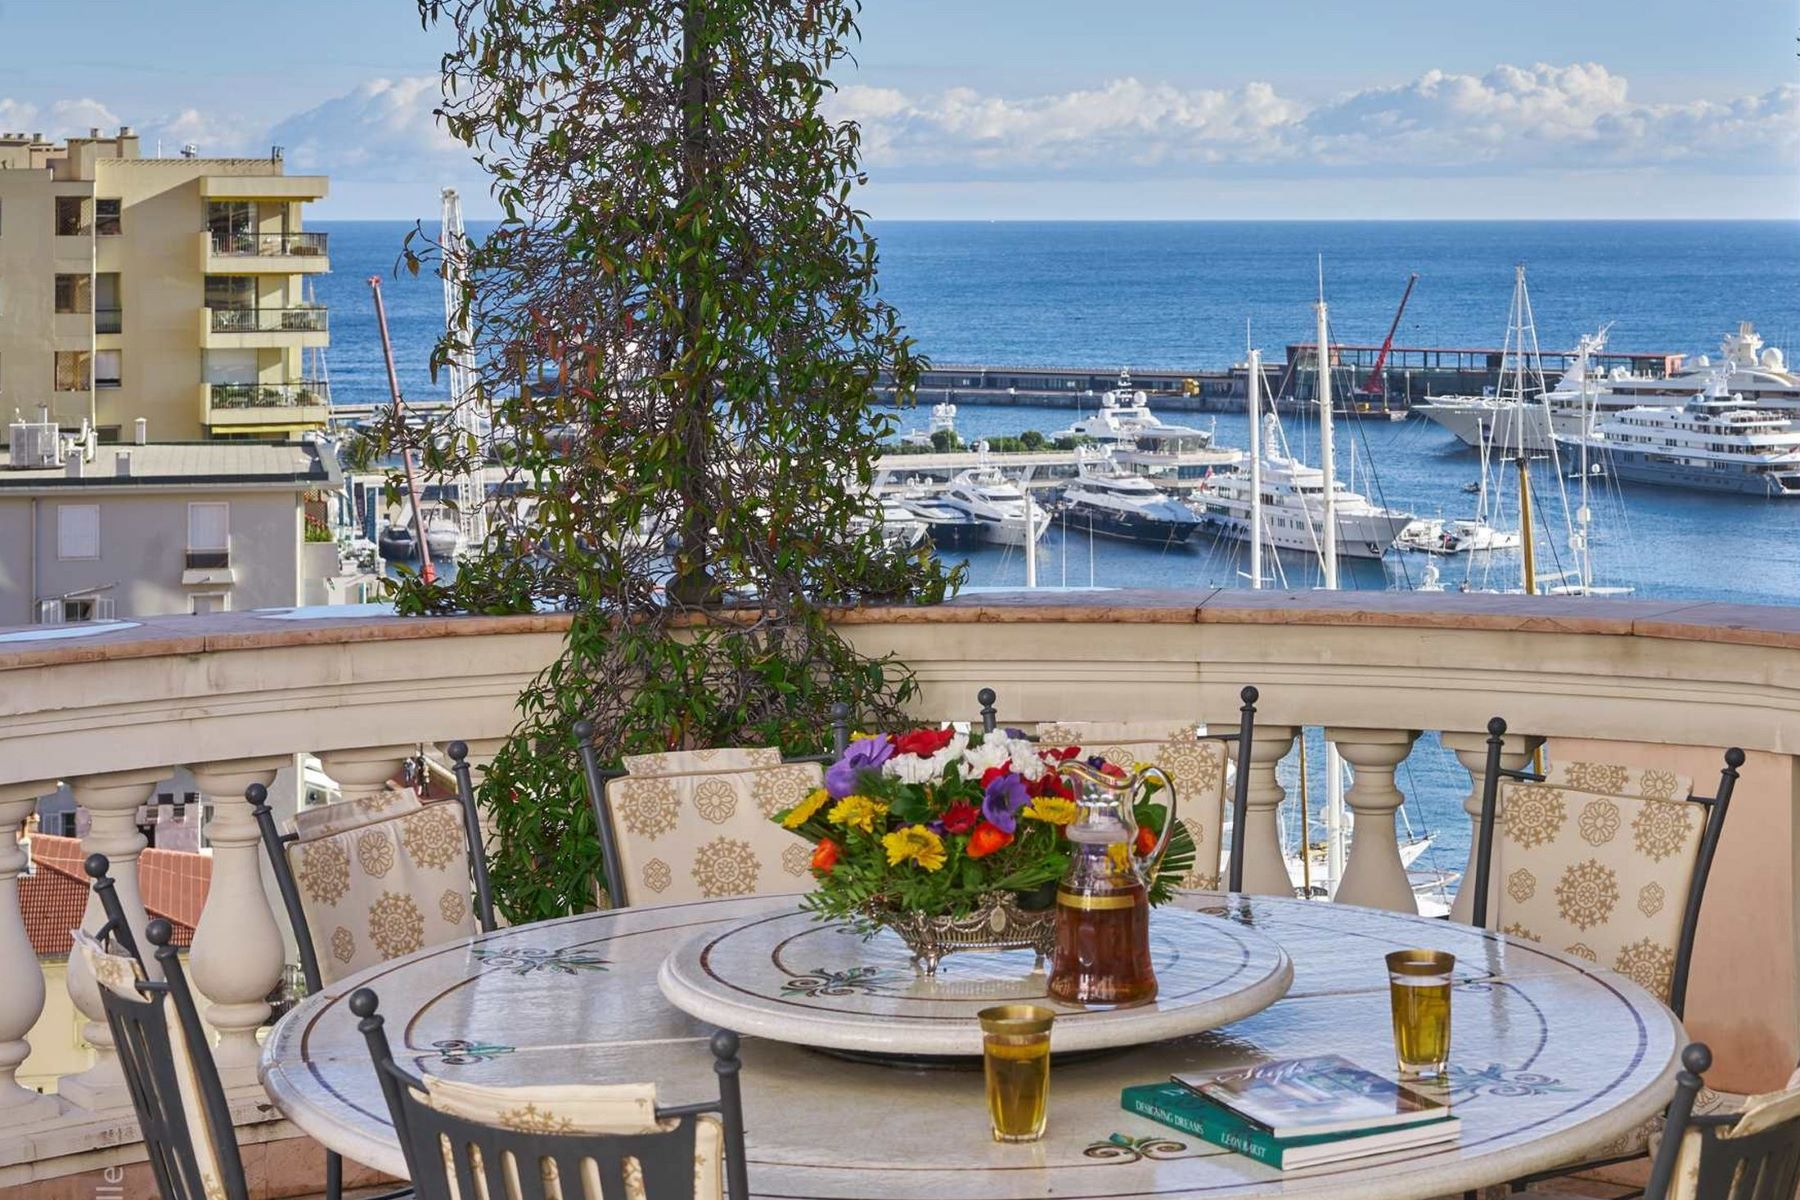 Property for Sale at Exceptional Villa overlooking the Port. Monaco, La Condamine 98000 Monaco